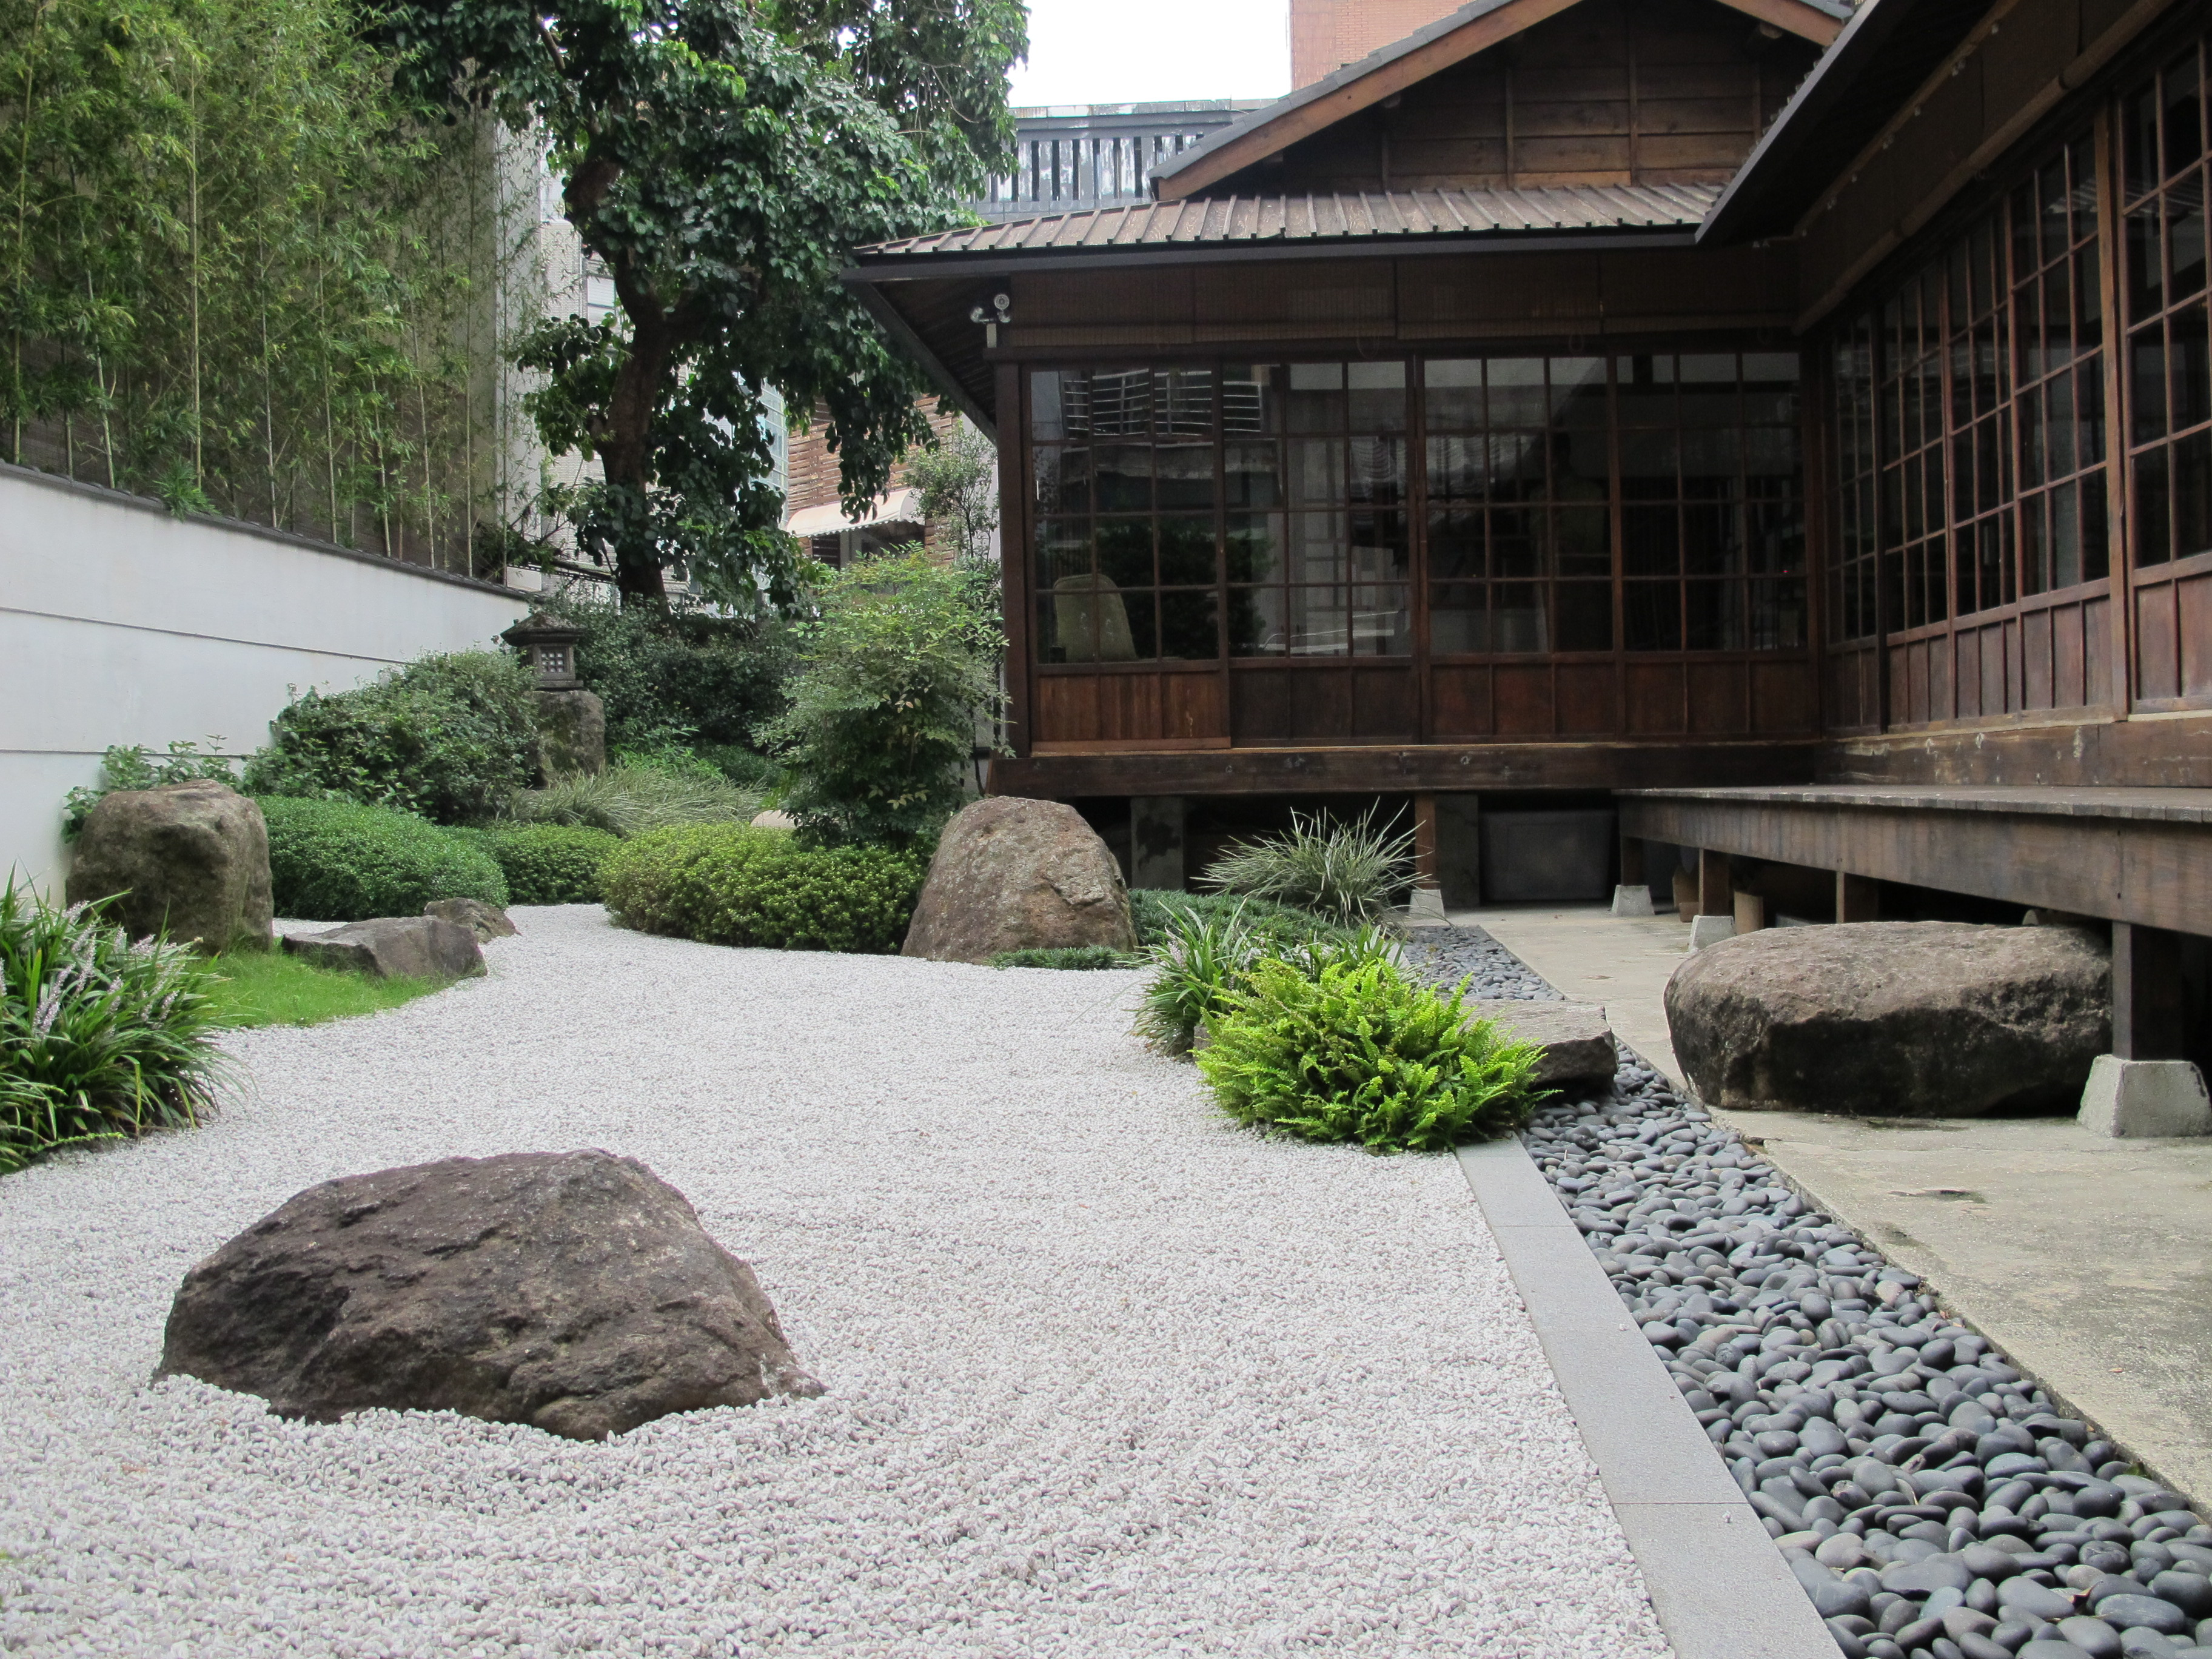 A 1920s-built dormitory for high-ranking Japanese civil servants in Taipei has been renovated into the restaurant Leputing. | KYODO